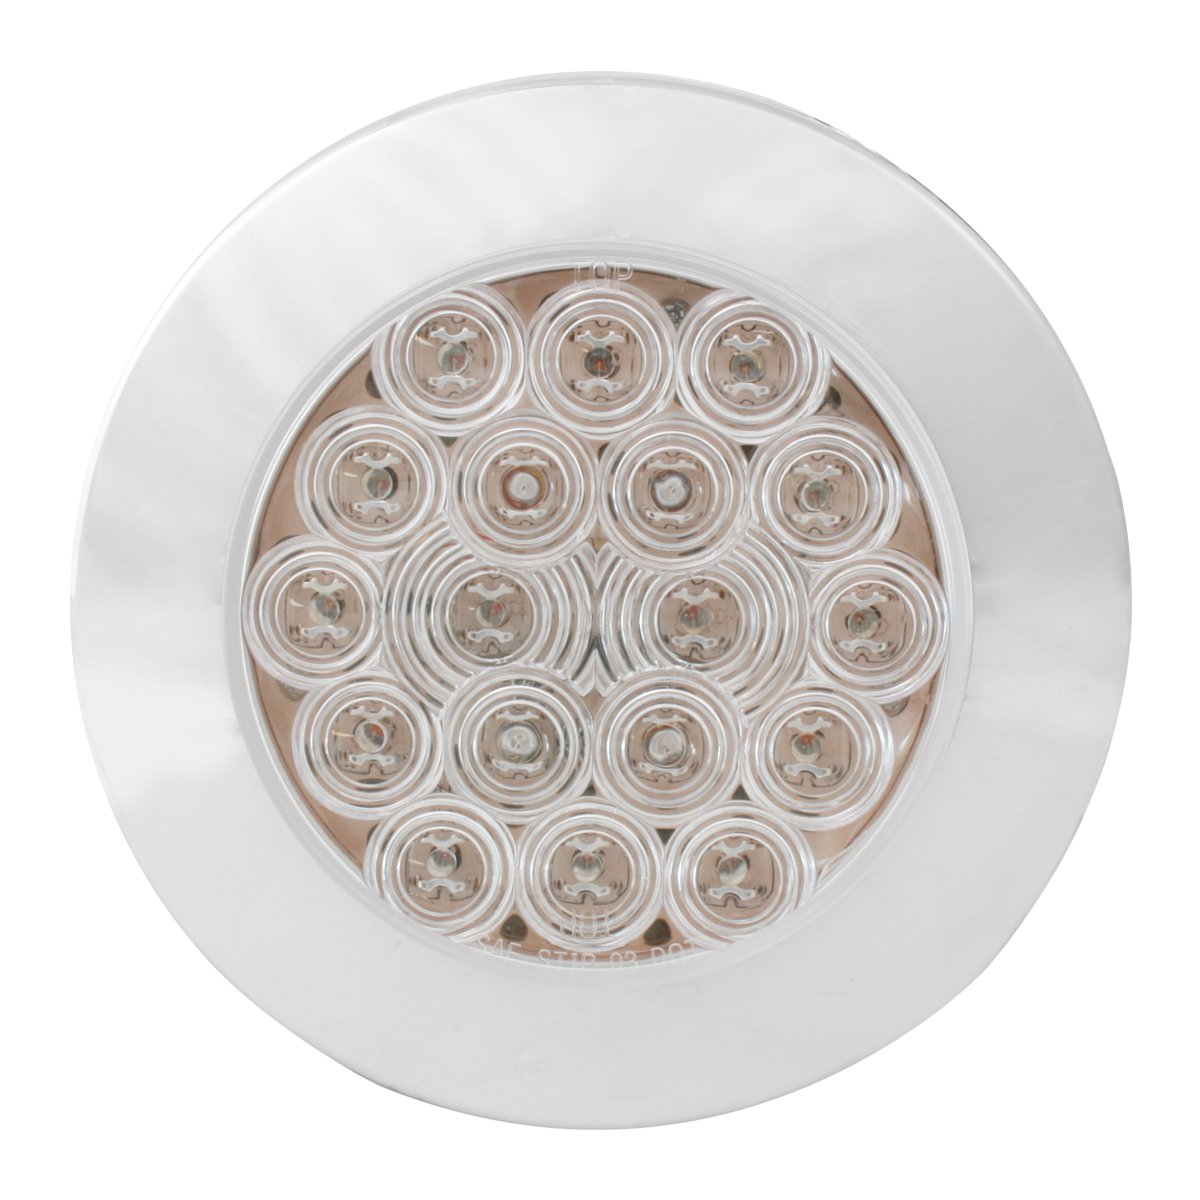 4 Round Flange Mount Amber 18 with Clear Lens and Chrome Twist-On Bezel Grand General 75901 LED Light